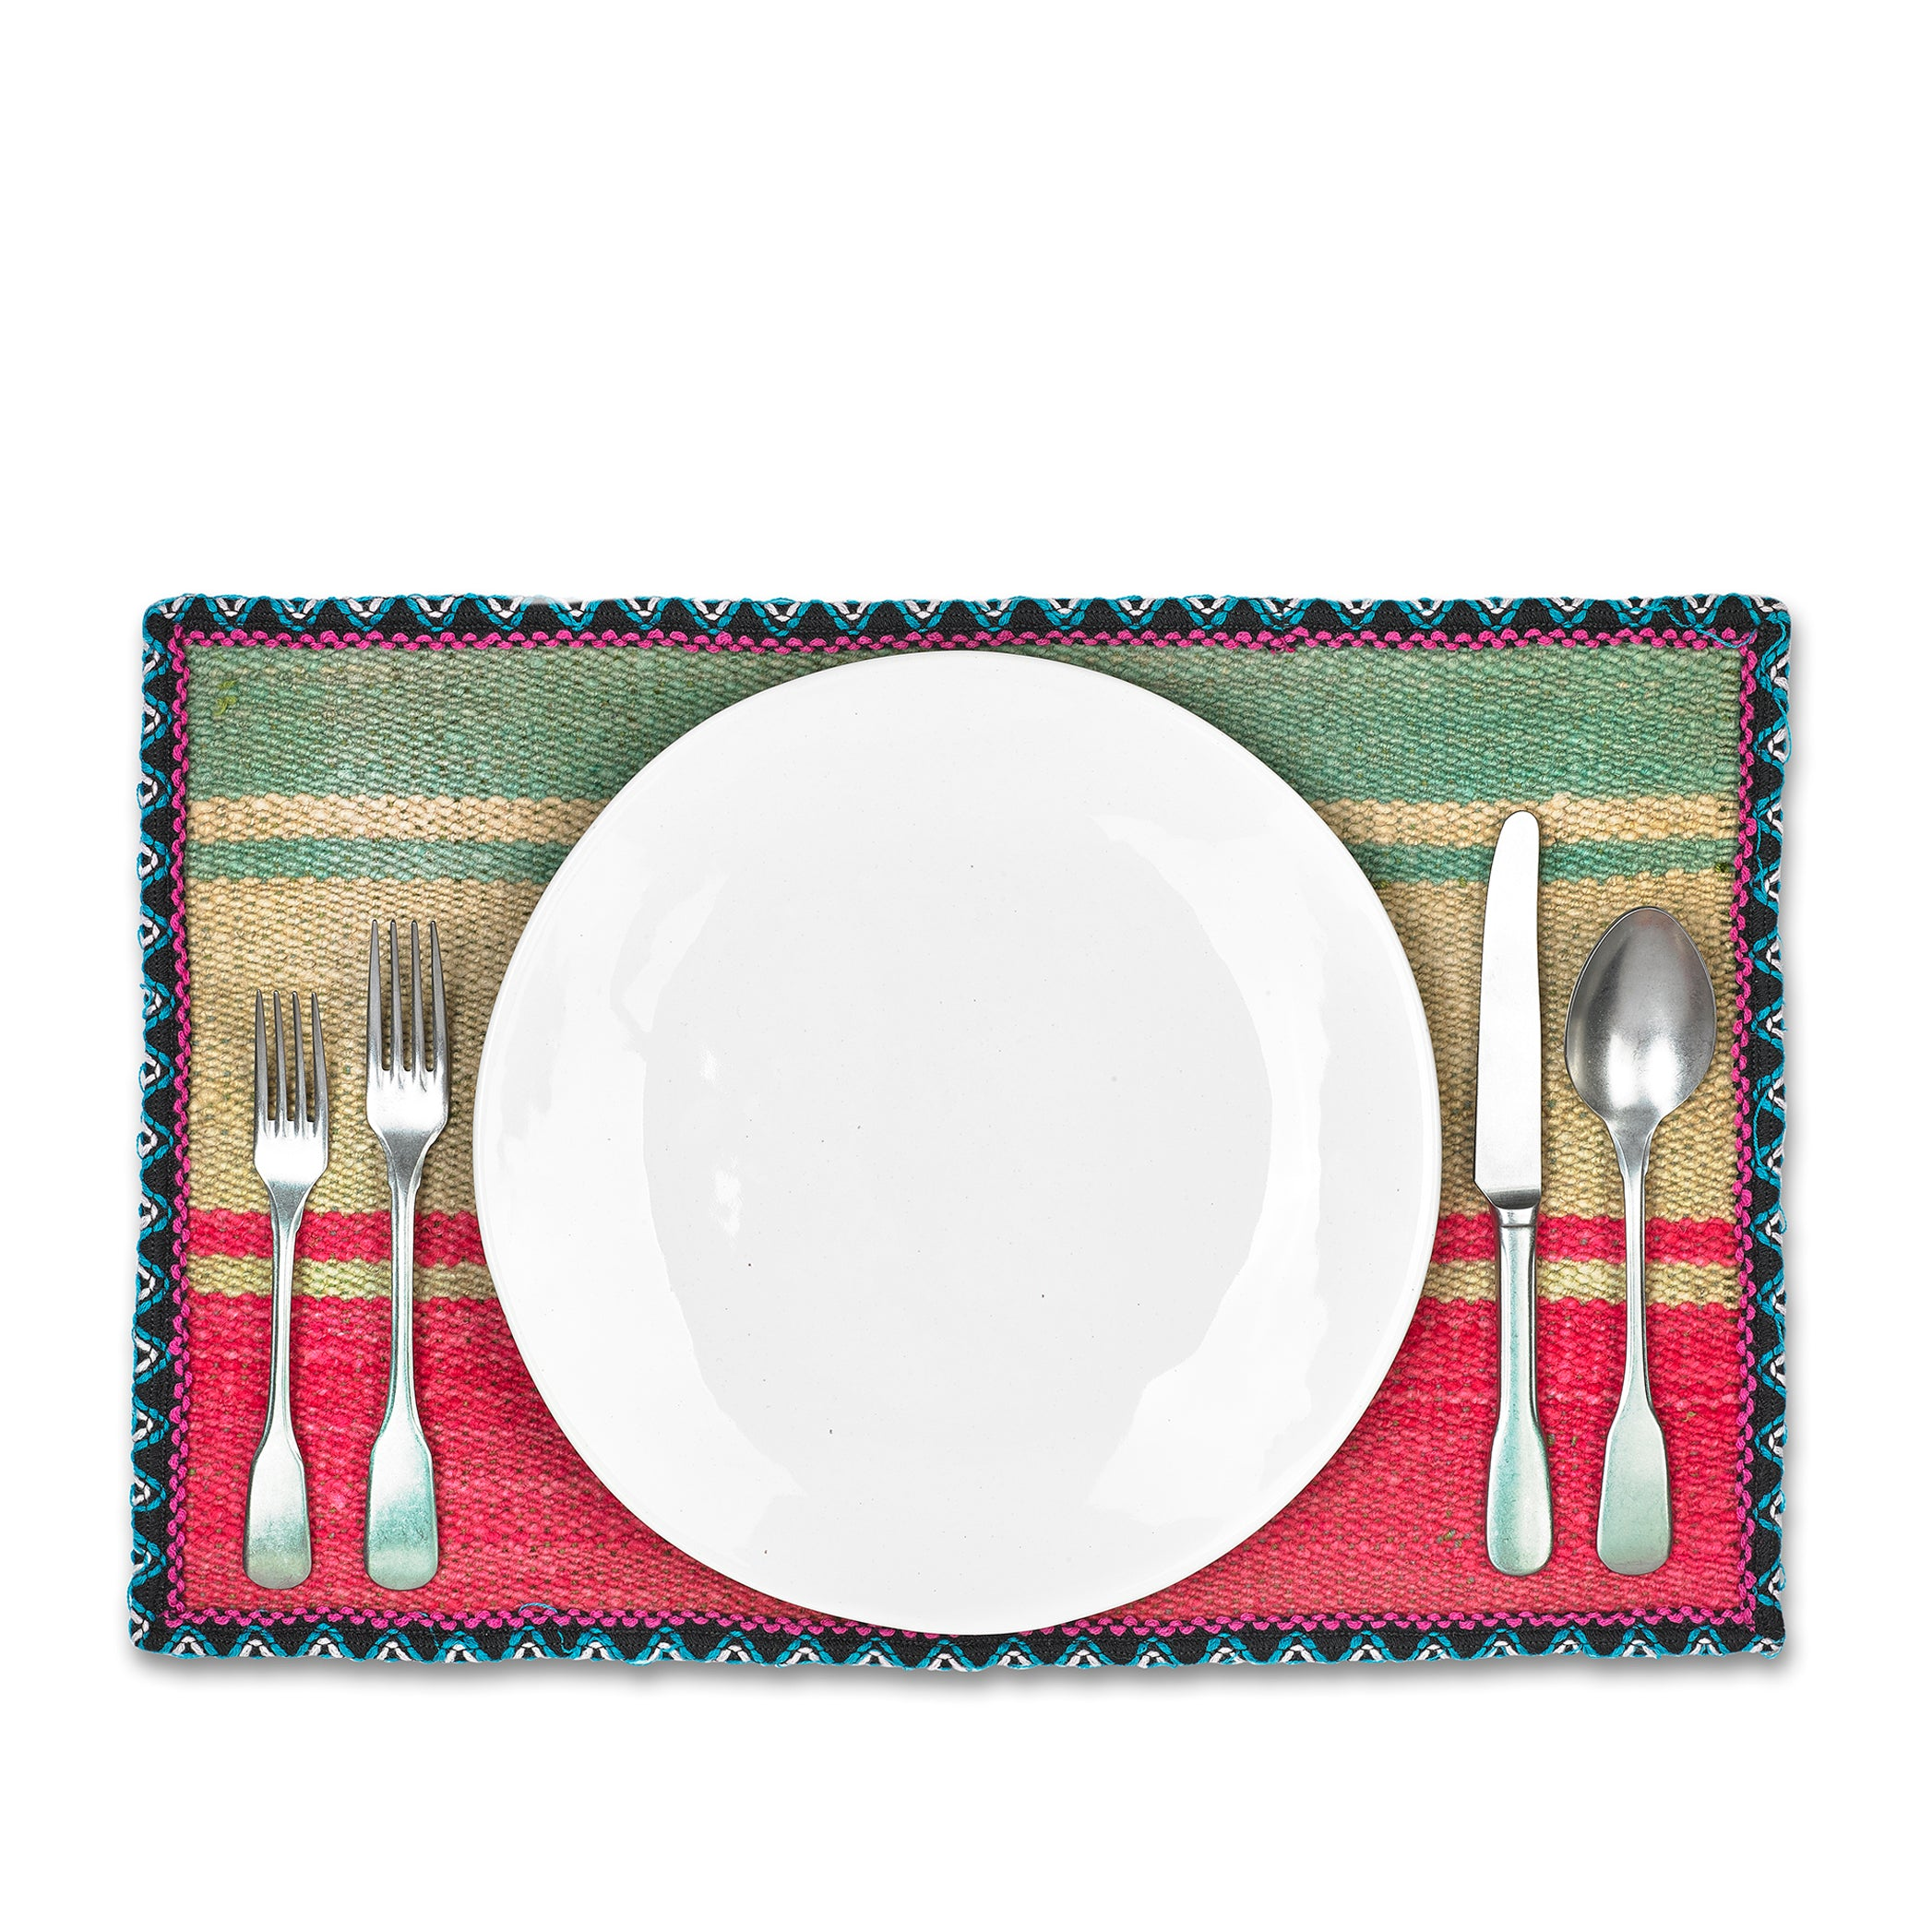 Peruvian Wool Placemat with Black Trim